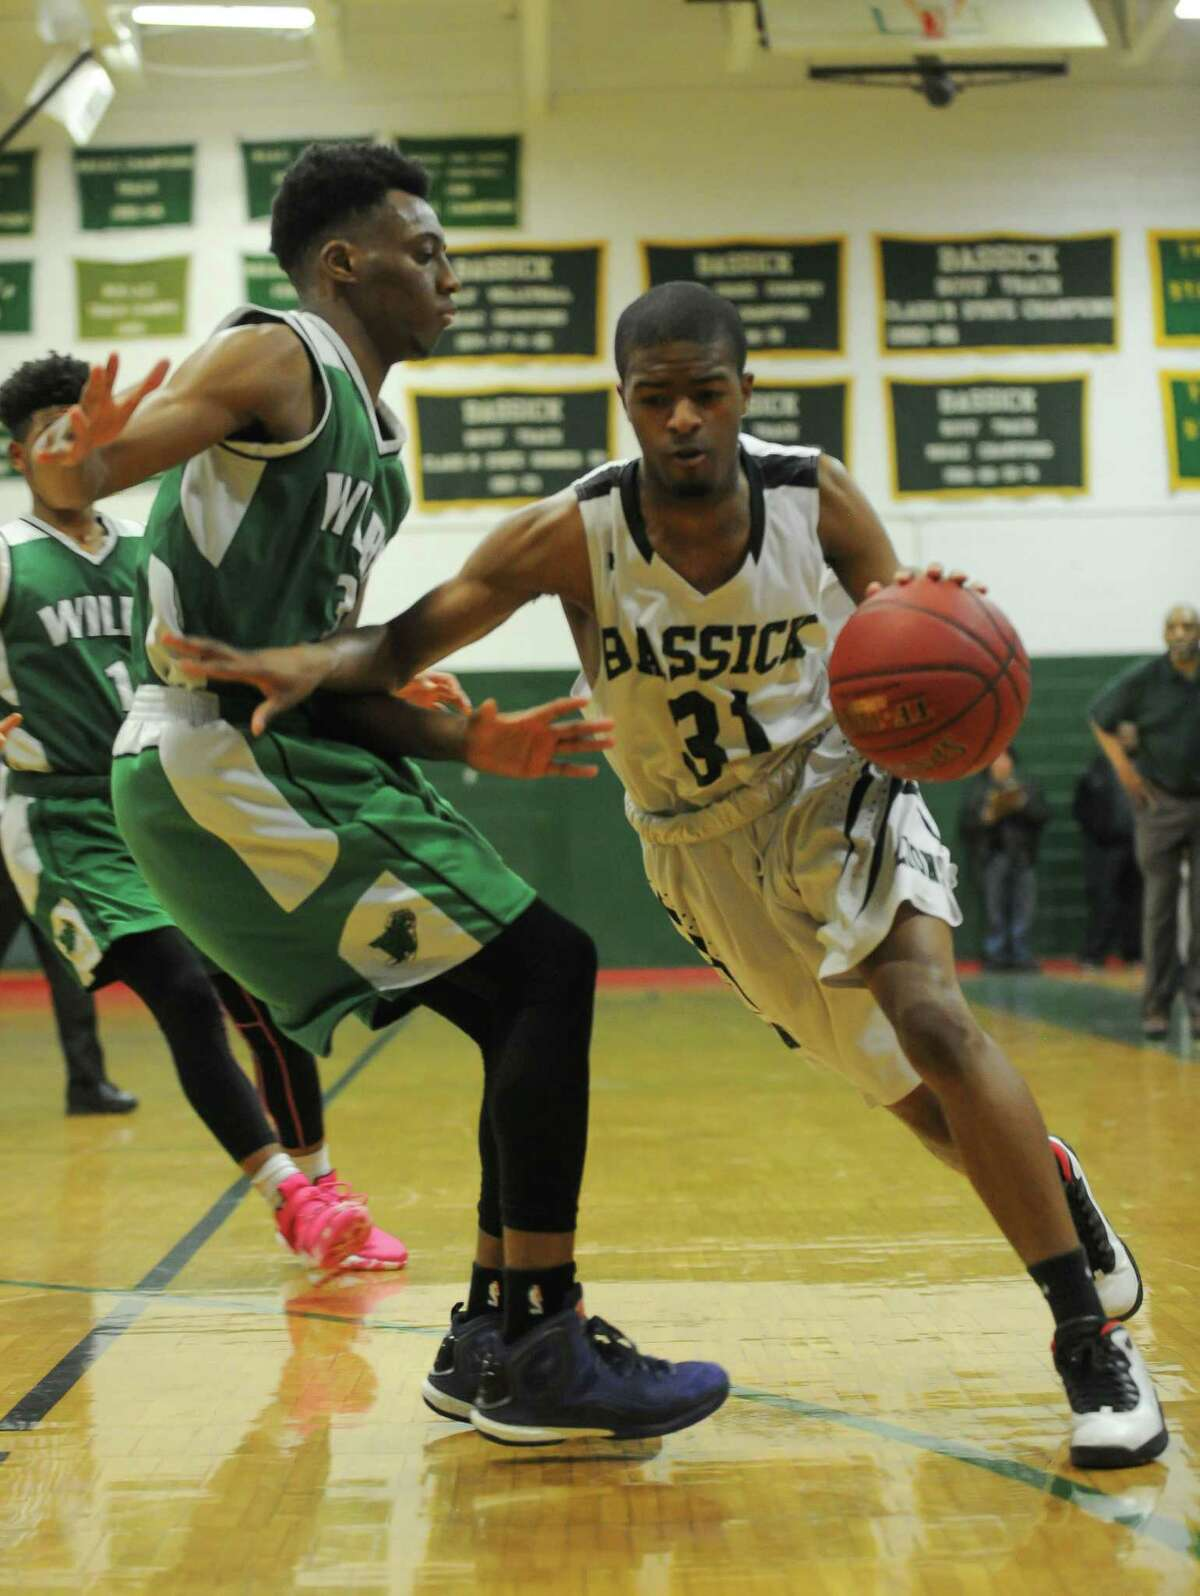 Basketball action during the second round of the Connecticut Class L Basketball Championships between the Bassick Lions and the Wilby Wildcats at Bassick High School on March 9, 2016 in Bridgeport, Connecticut.